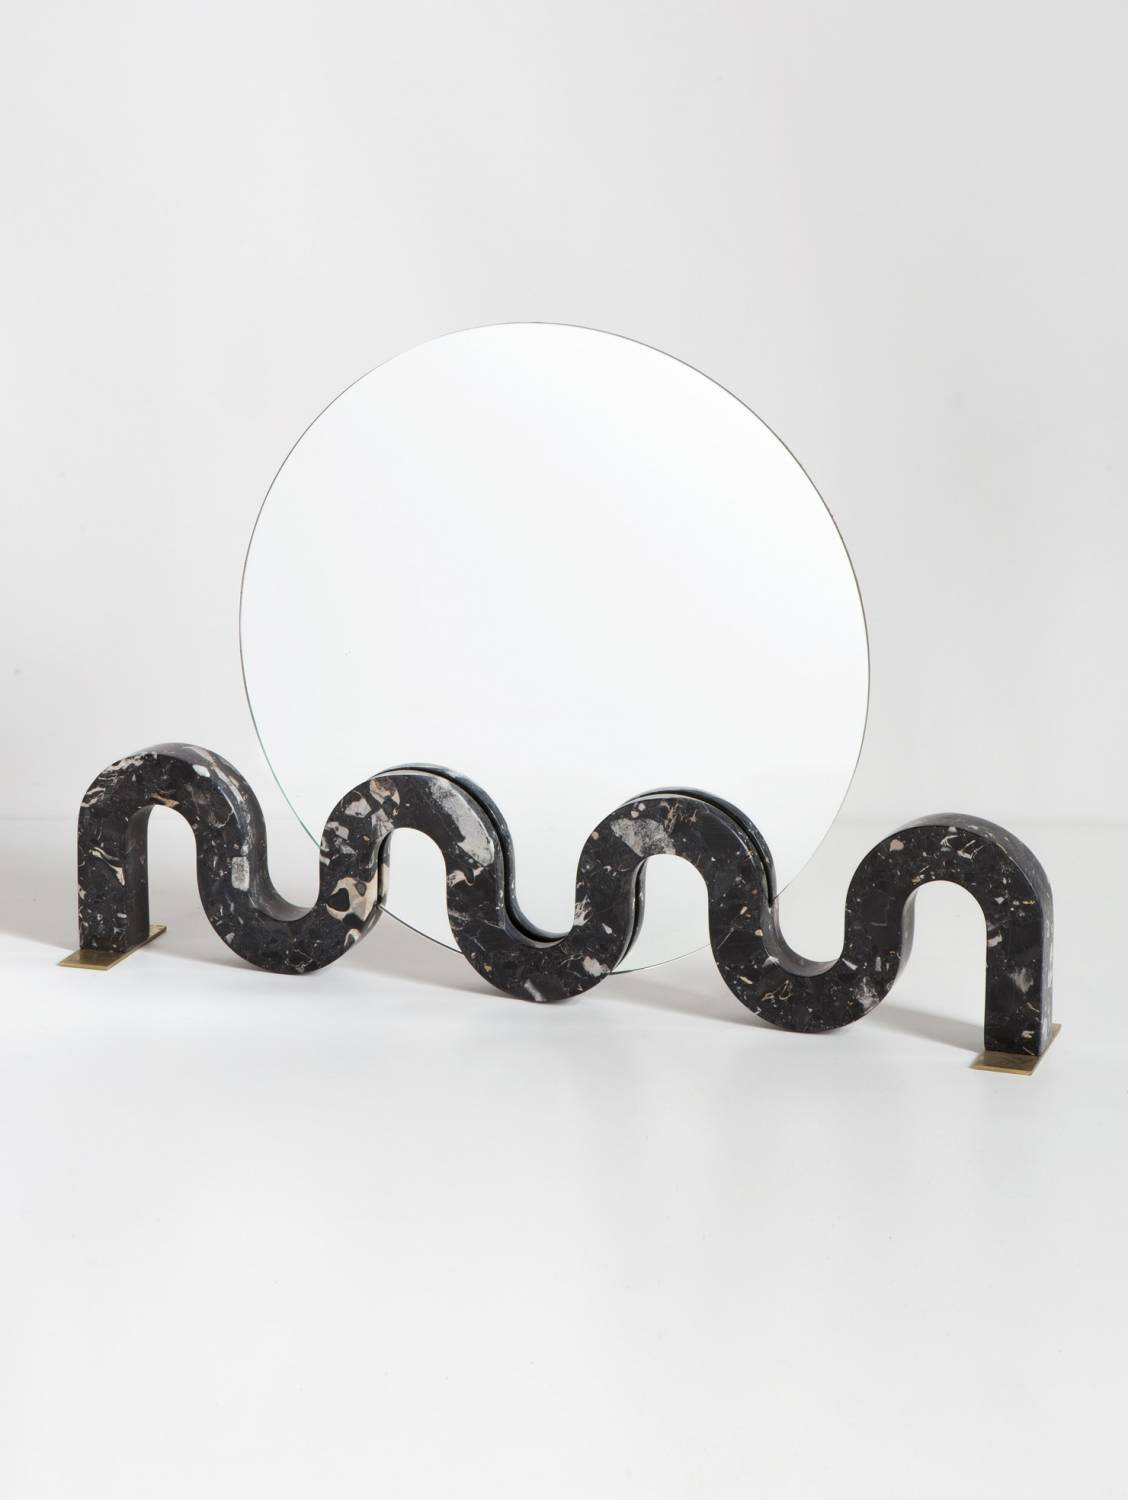 Sine Wave mirror by Moving Mountains | Flodeau.com